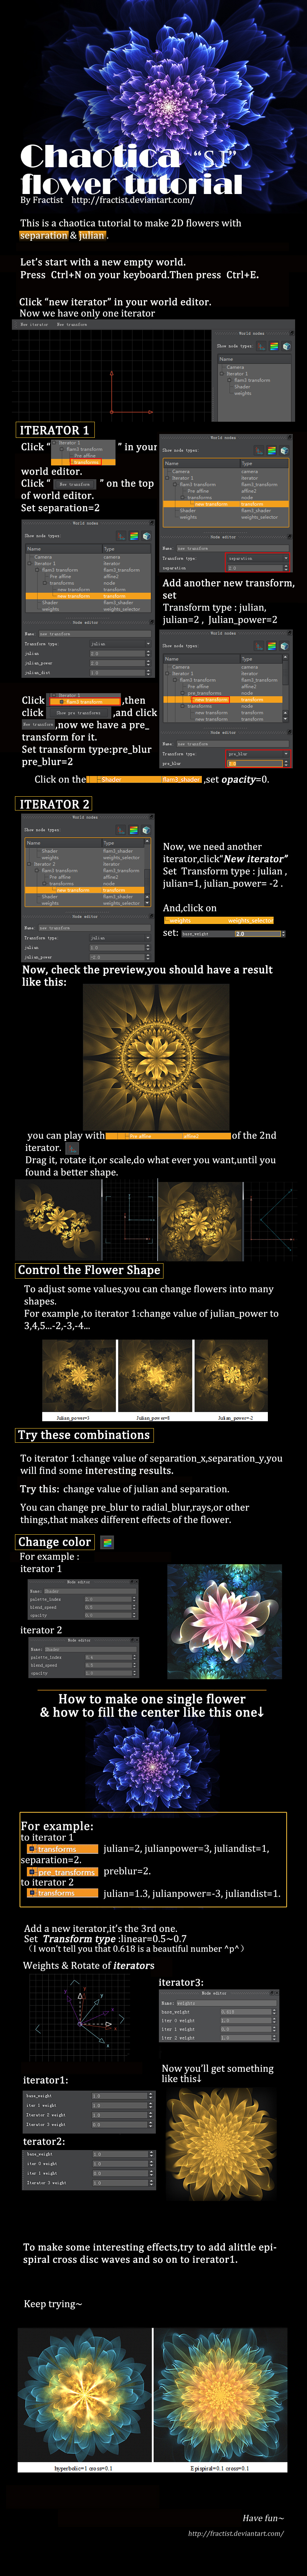 chaotica SJflower tutorial by  fractist